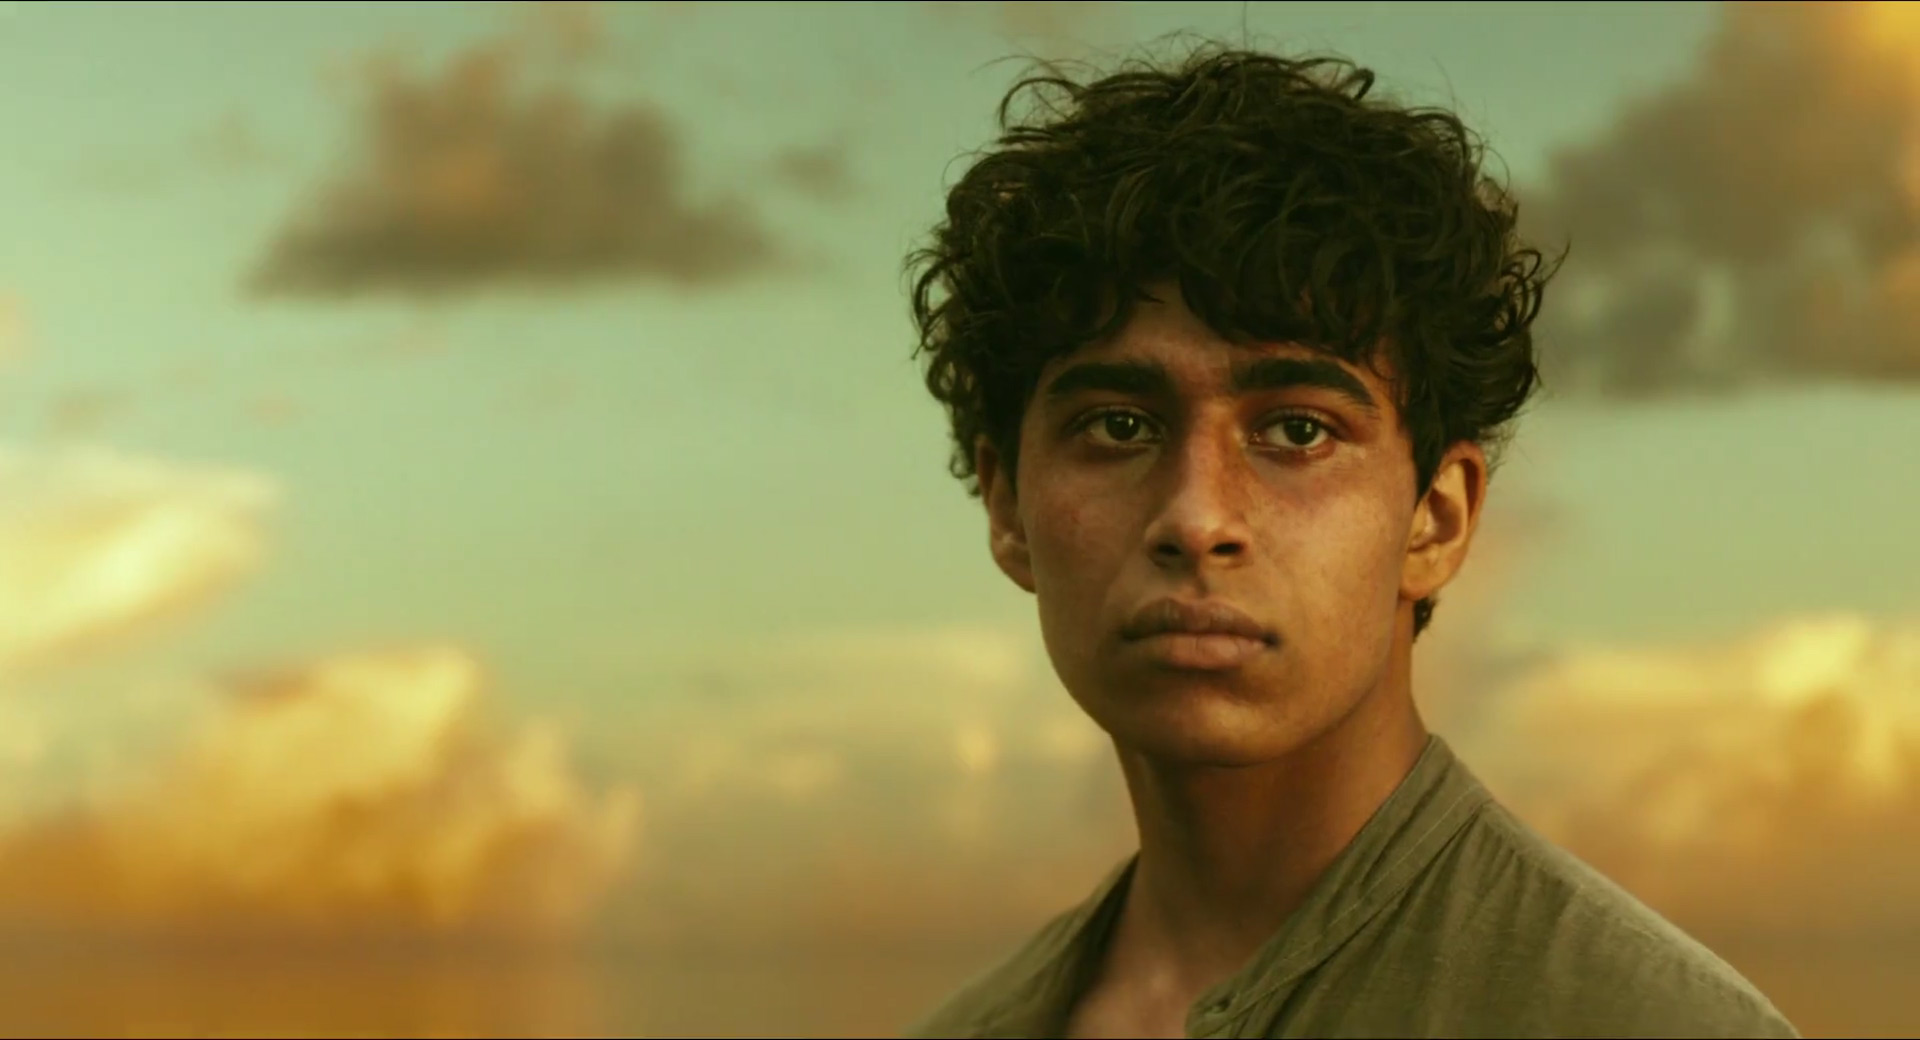 Life of pi 258 for Life of pi patel